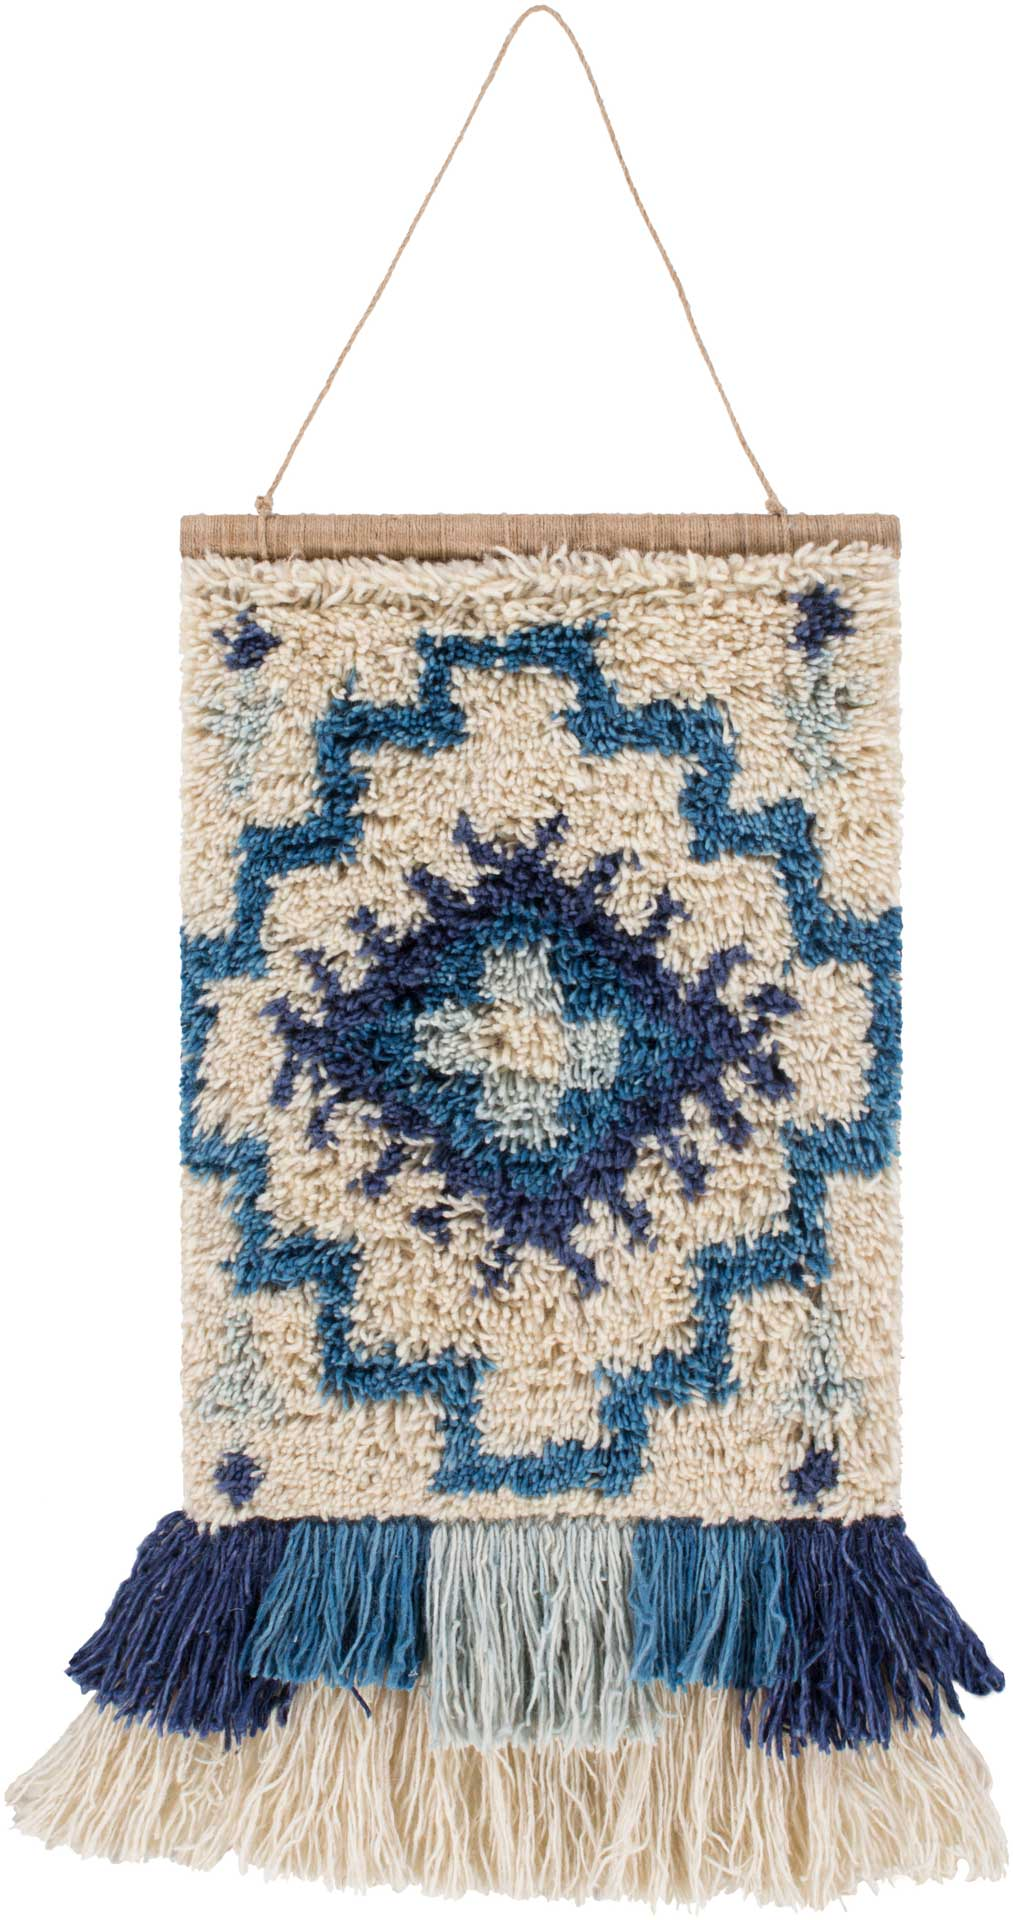 Safura Wall Hanging Denim/Sky Blue/Cream